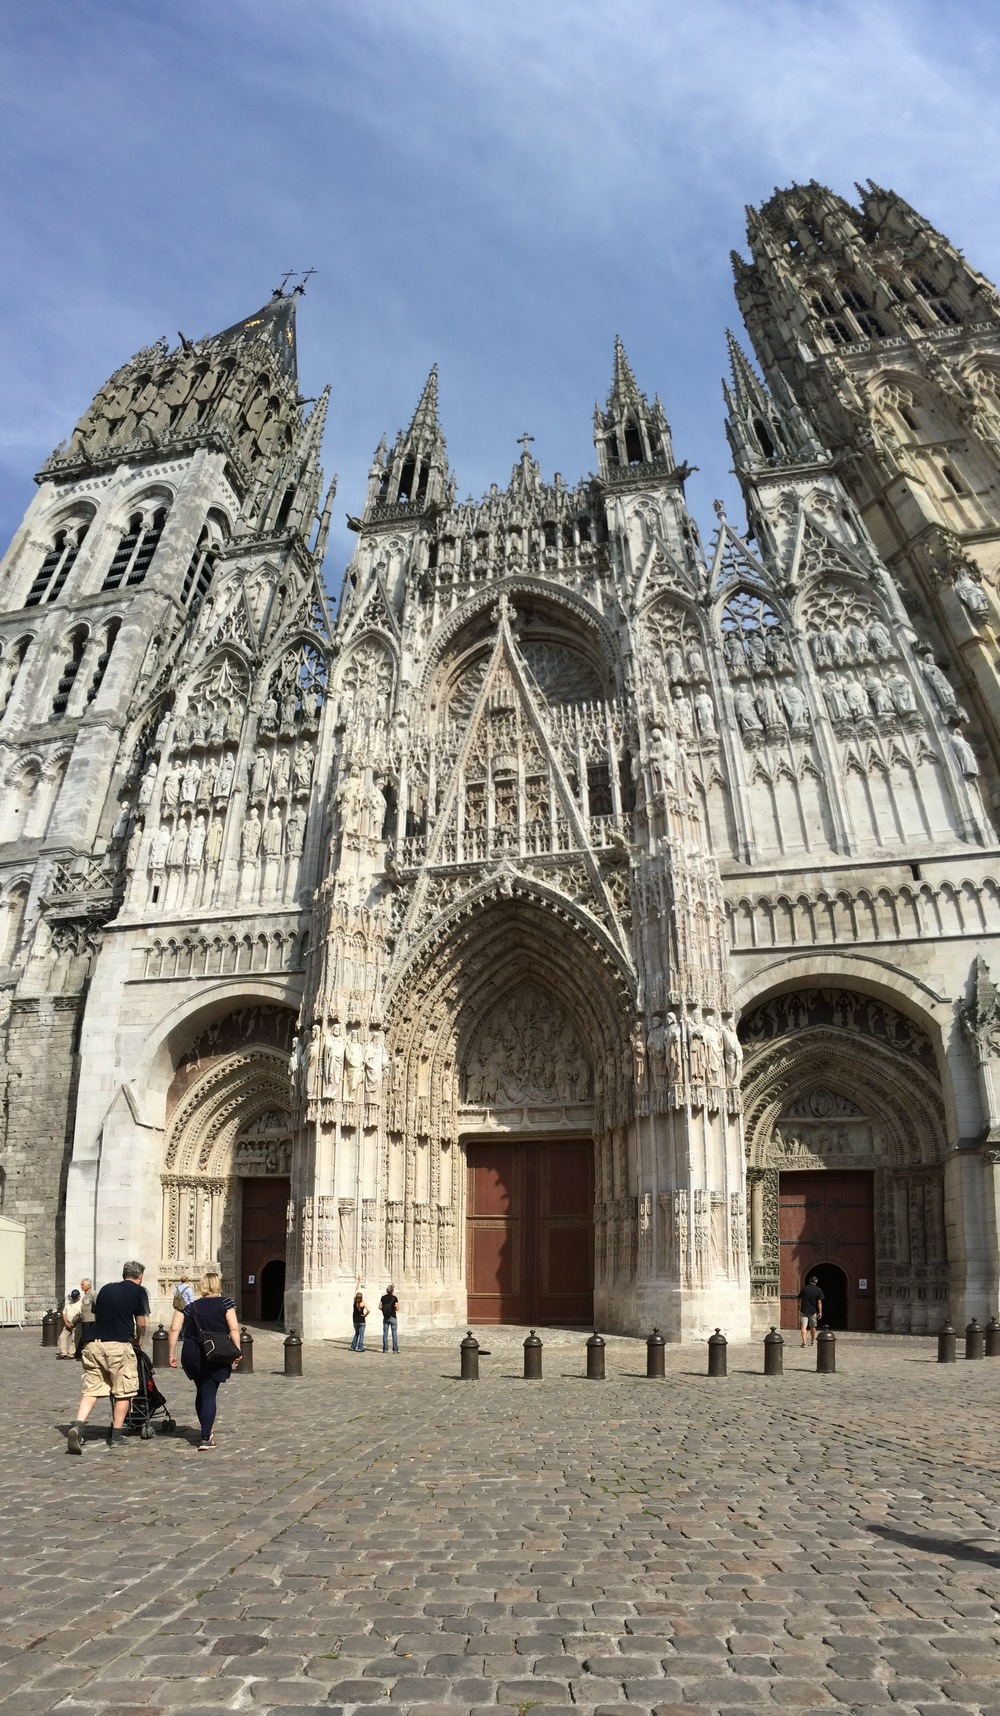 Rouen Cathedral - so spanky clean I hardly recognized it!